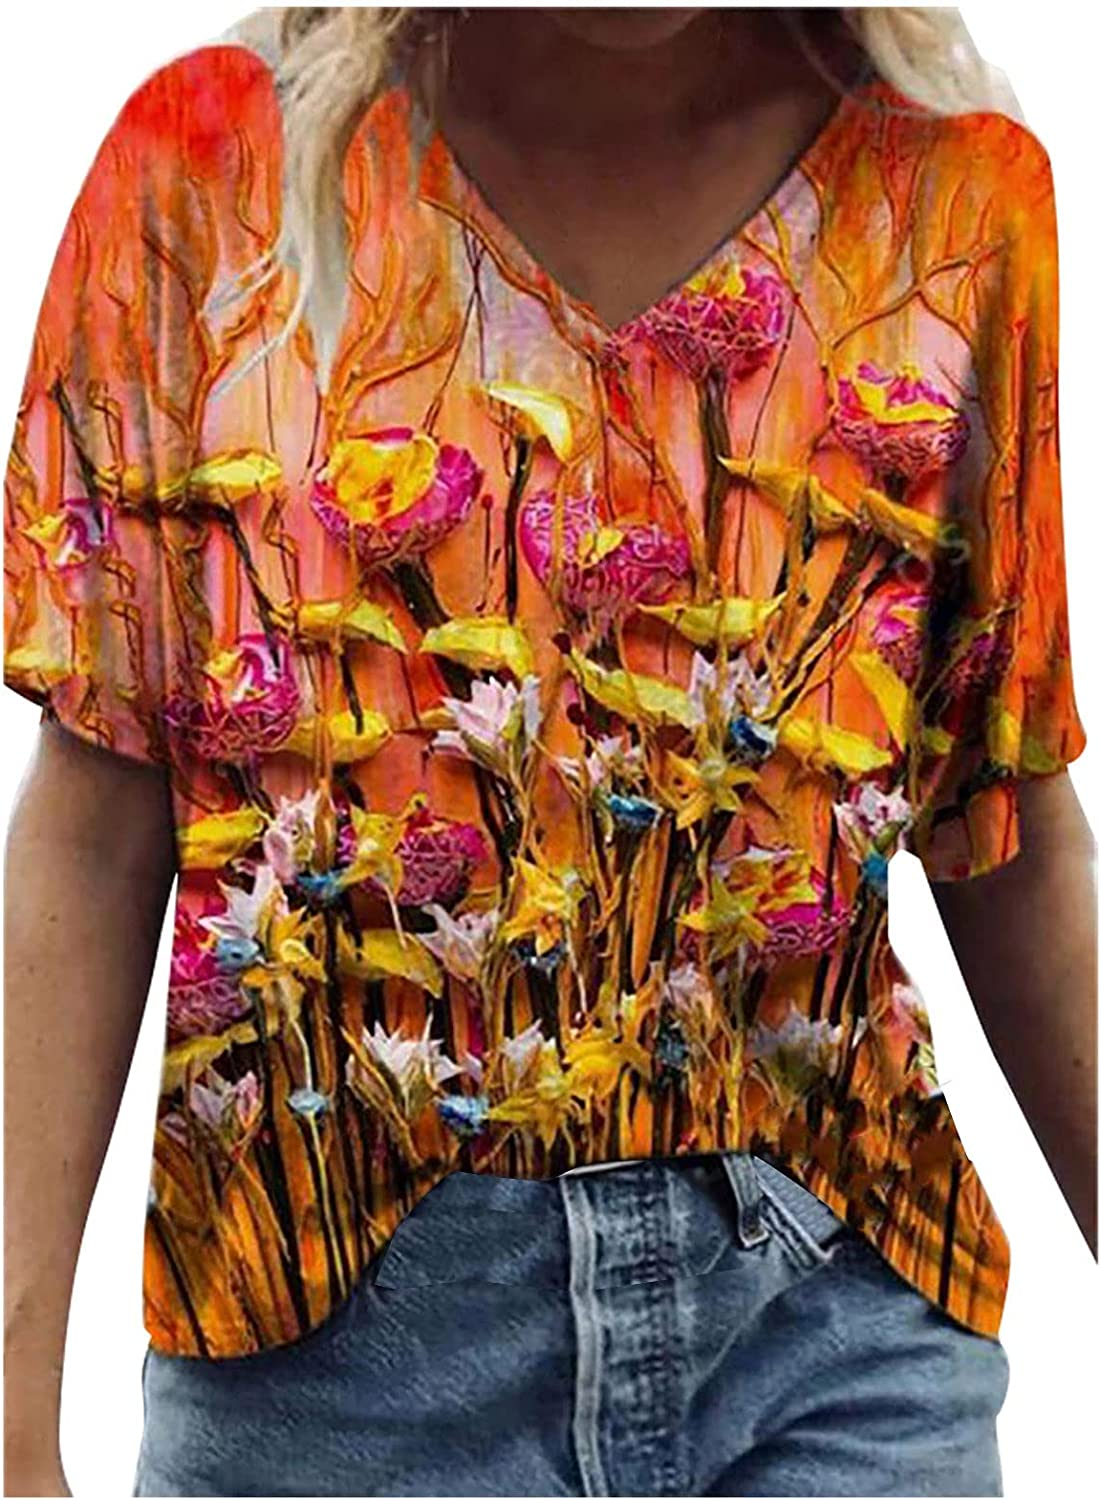 5665 Womens Short Sleeve Shirts Cute Flowers Printed V-Neck Tshirts Blouse Summer Casual Tops Loose Fit Graphic Tees